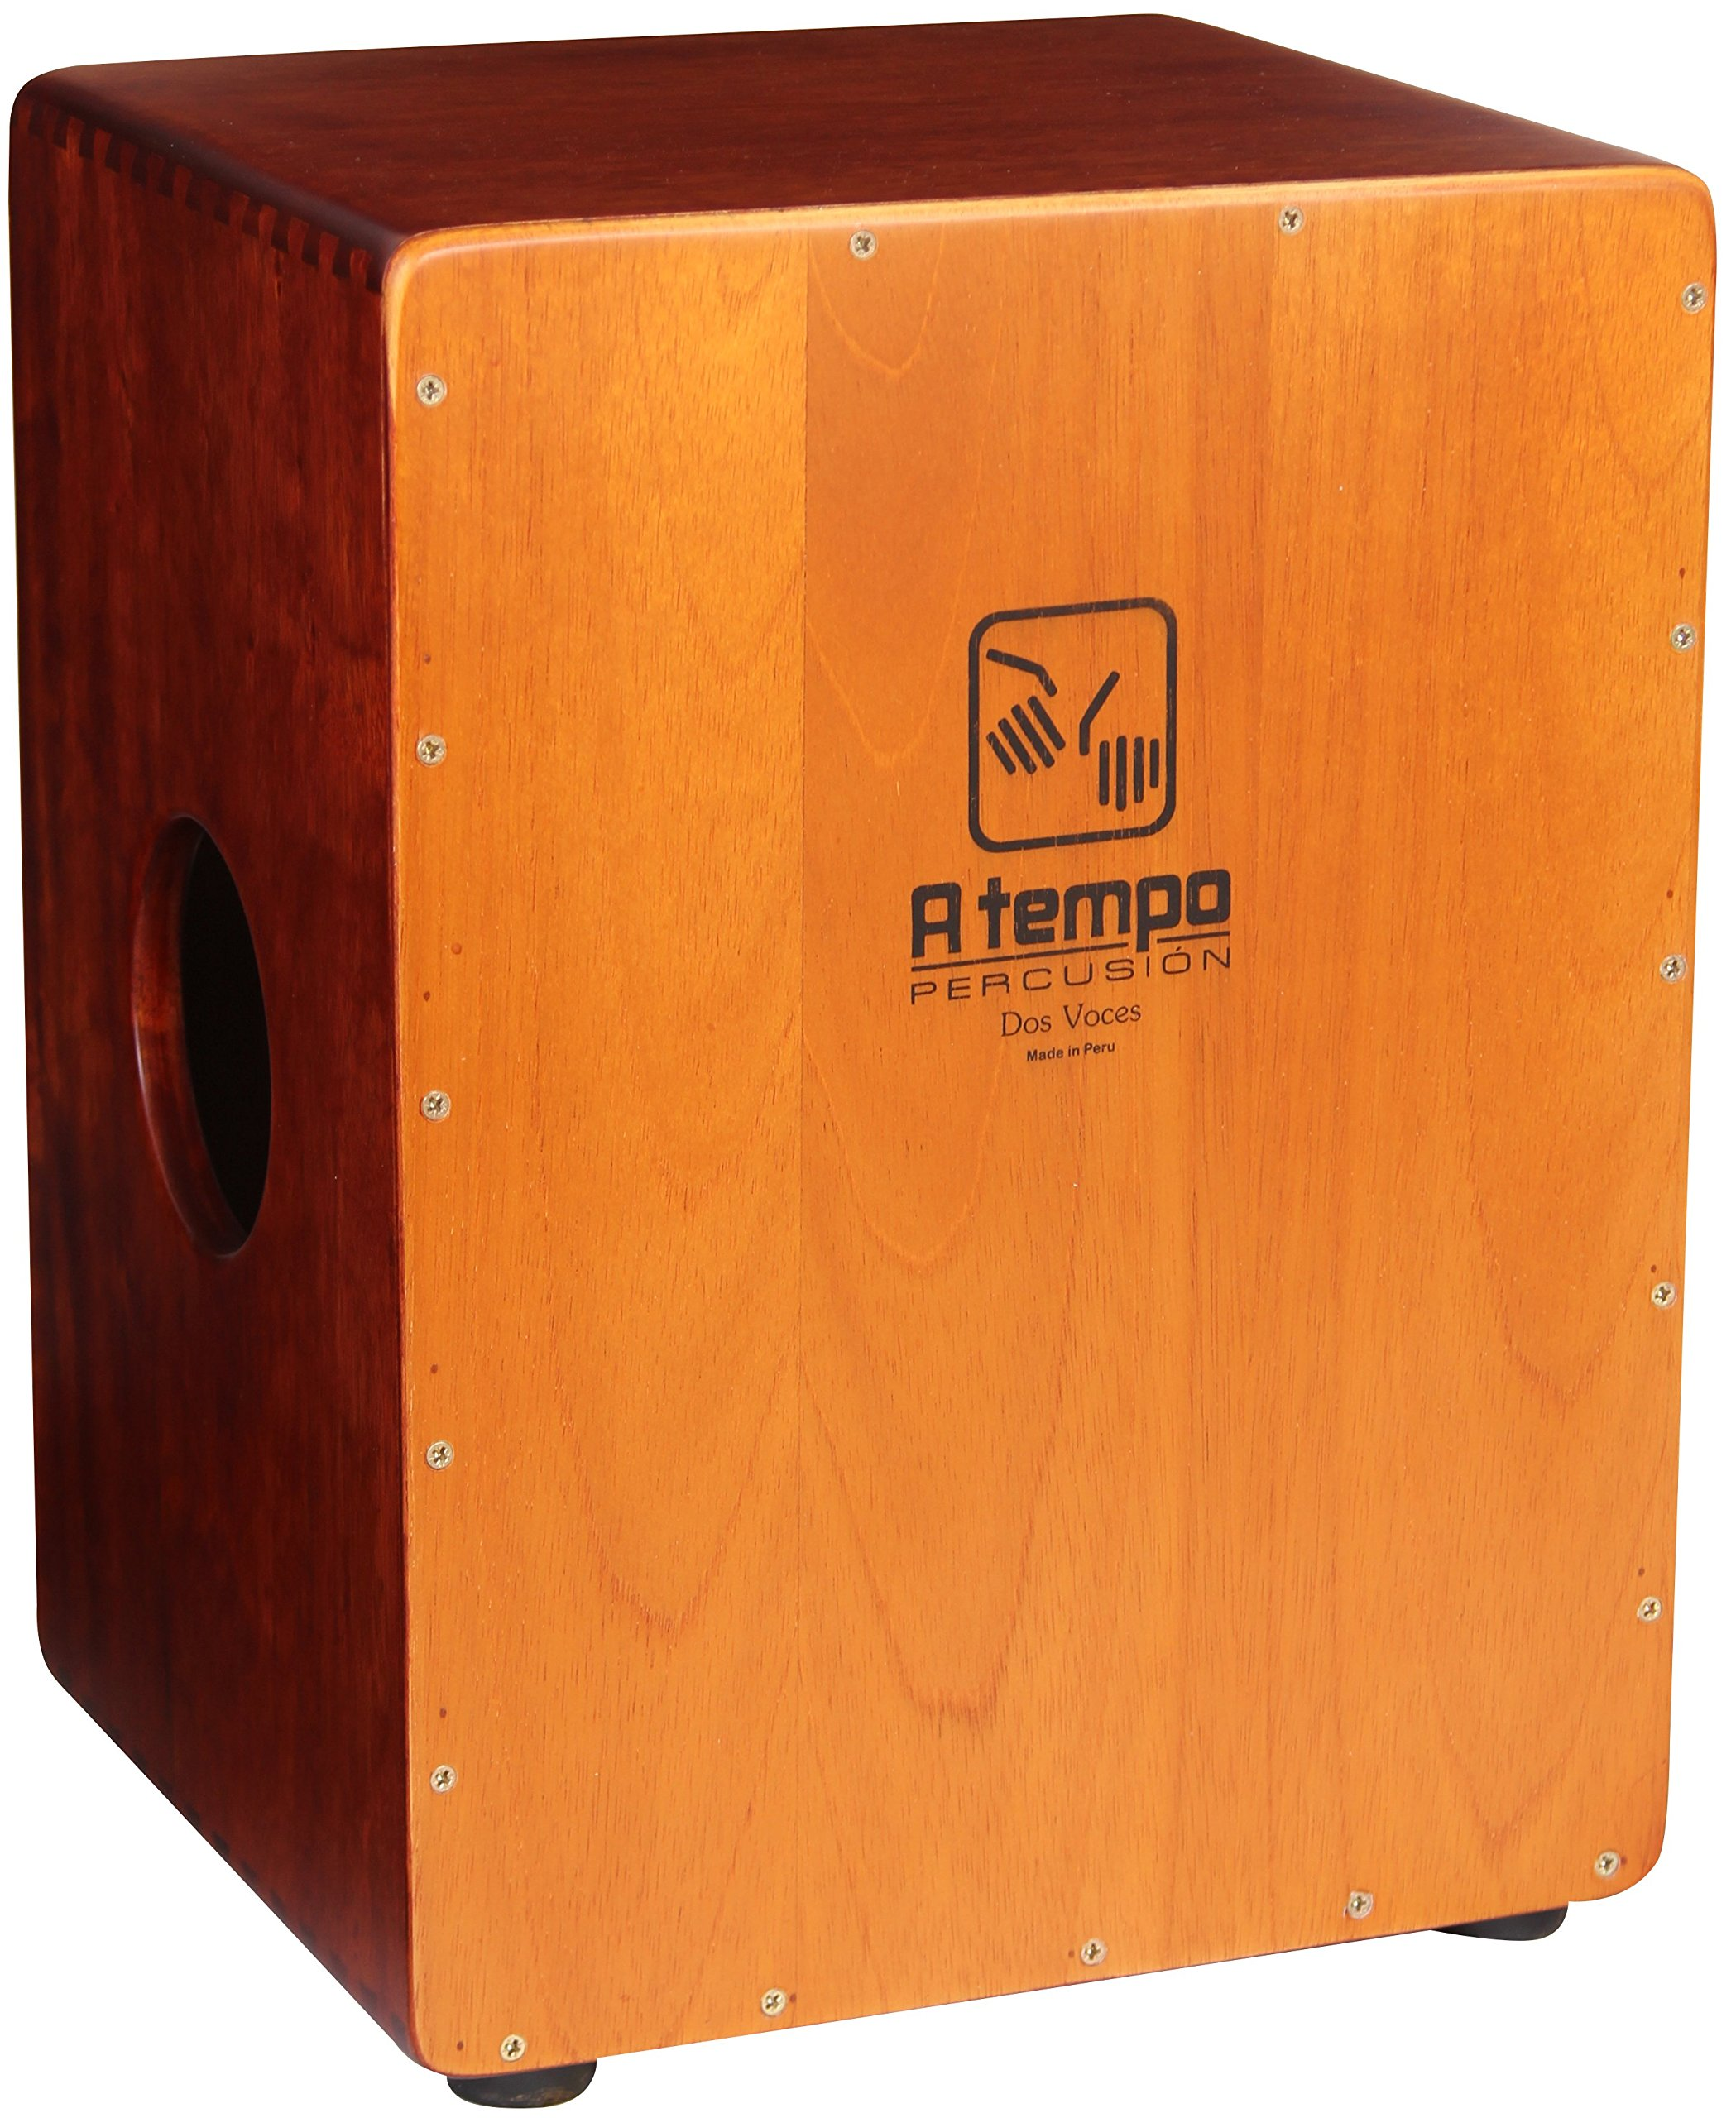 A Tempo Percussion Dos Voces (Two Voices) Cajon with Free Gig Bag